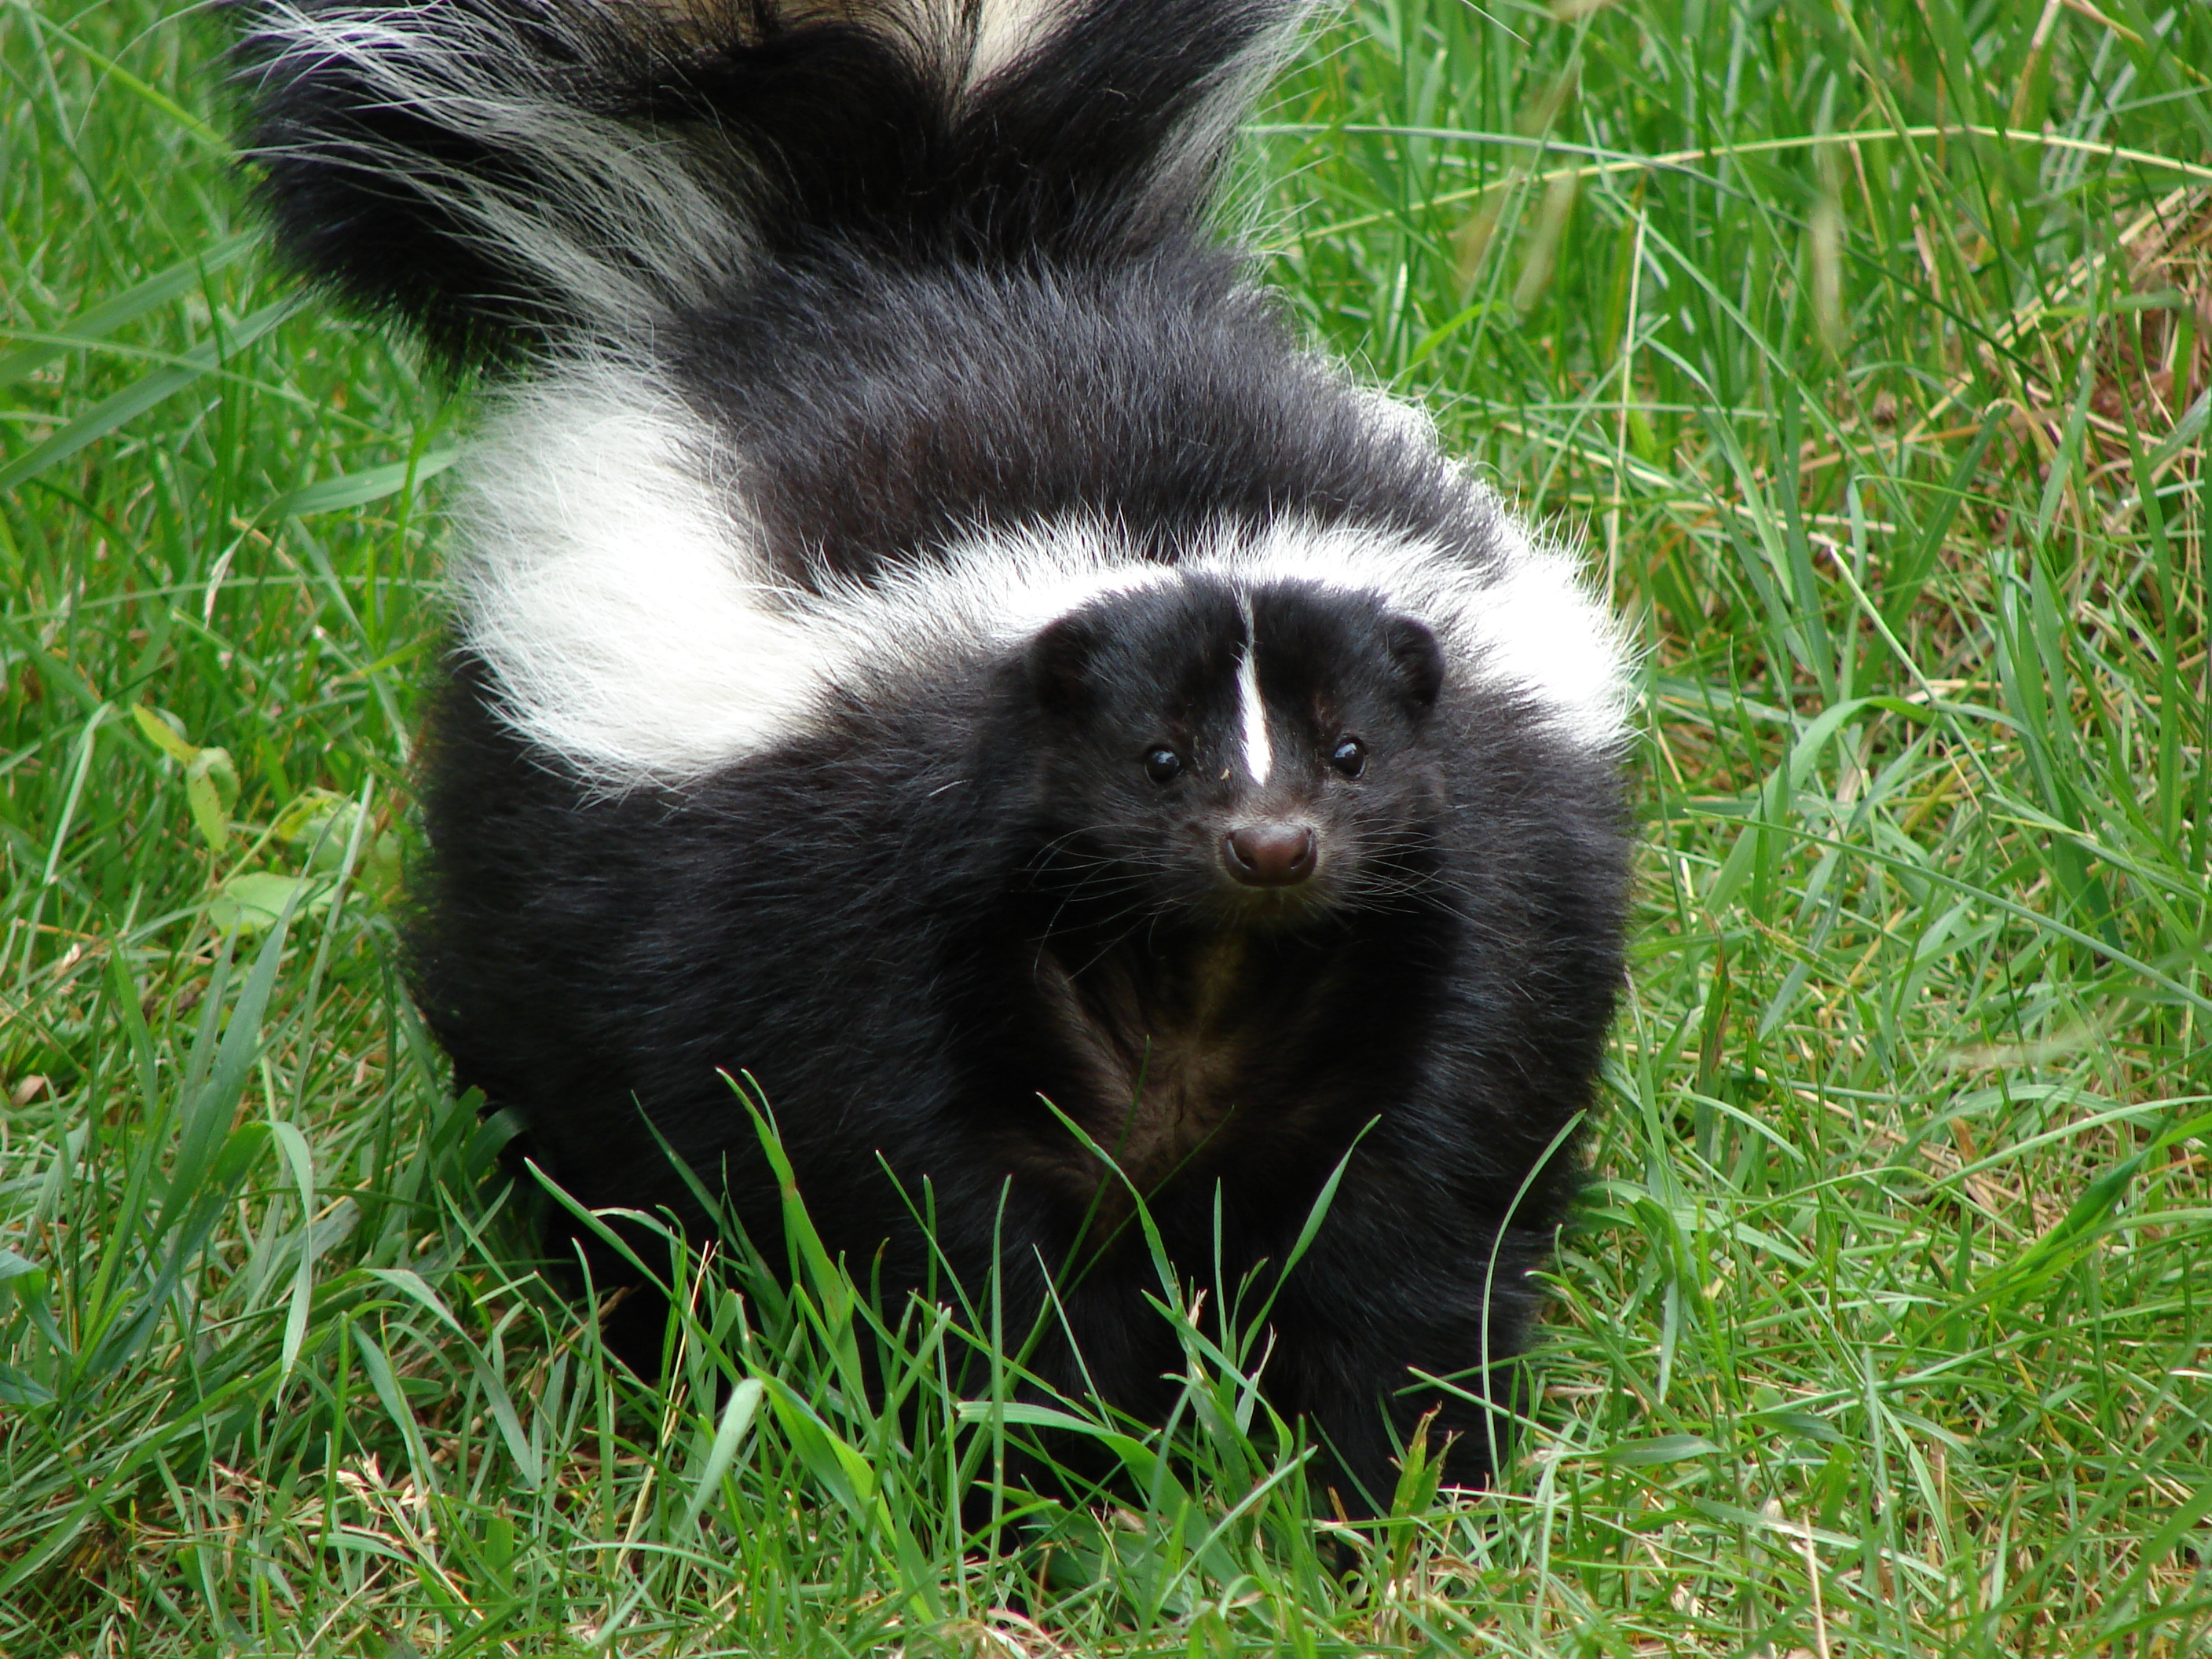 https://i0.wp.com/www.animalcapturewildlifecontrol.com/images/skunk-removal-los-angeles.jpg